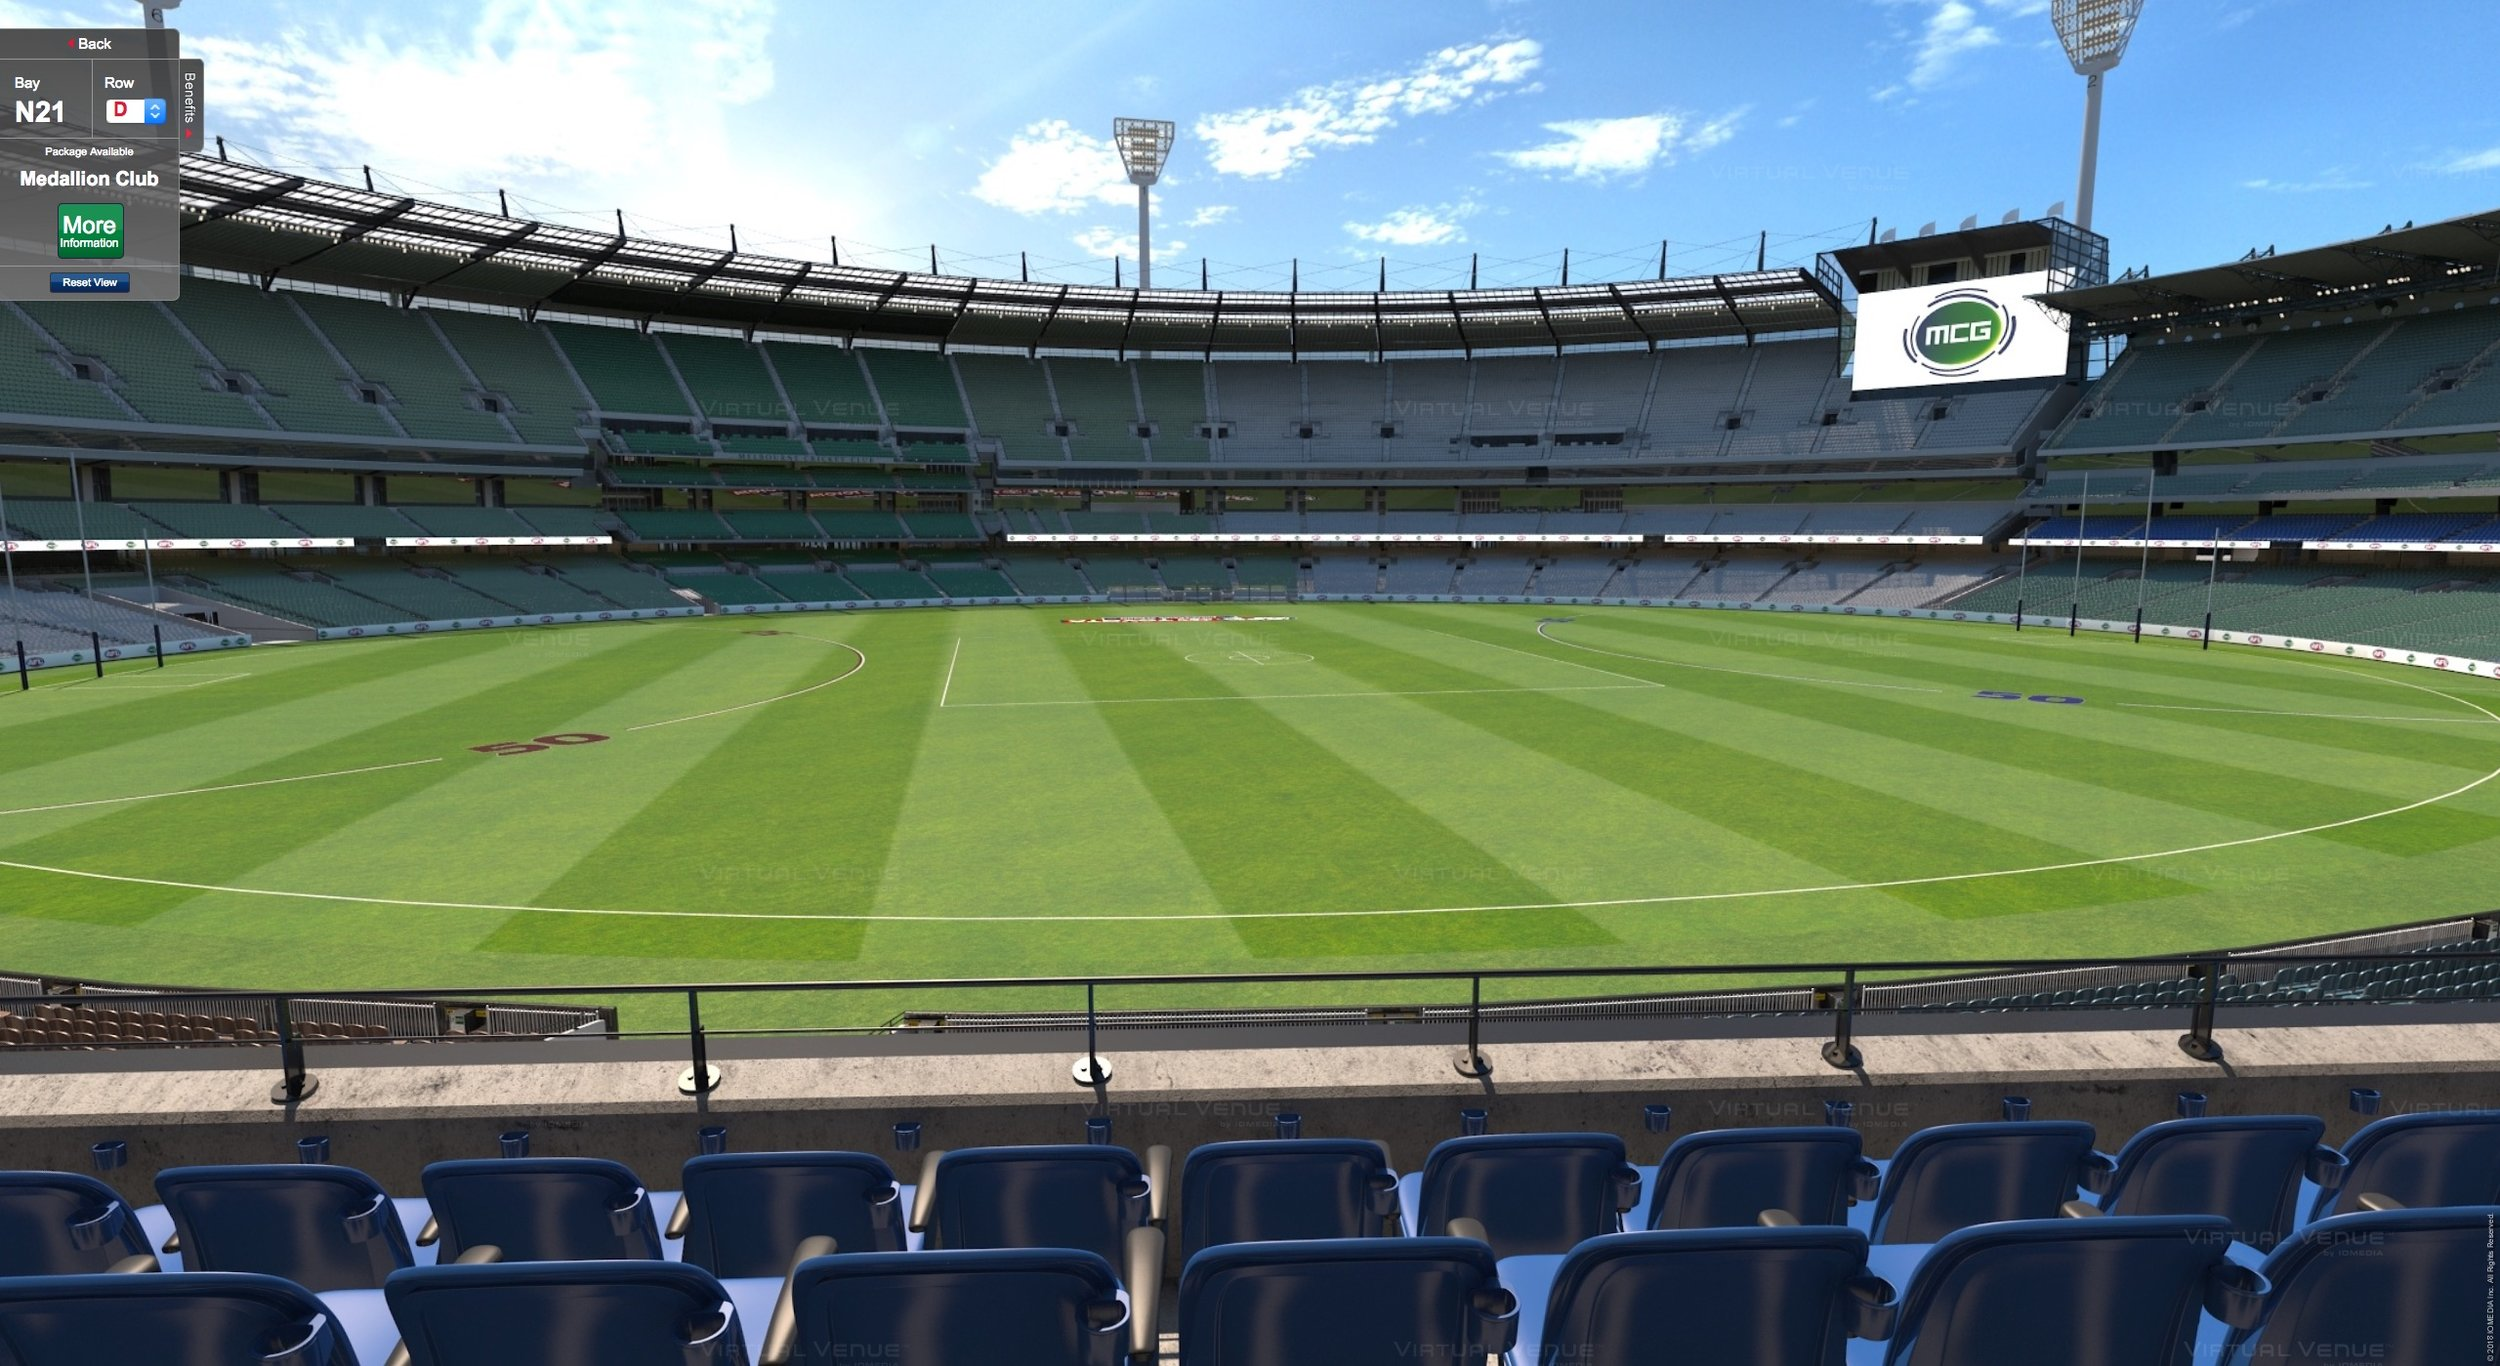 Hawthorn v West Coast MCG Medallion Club seating